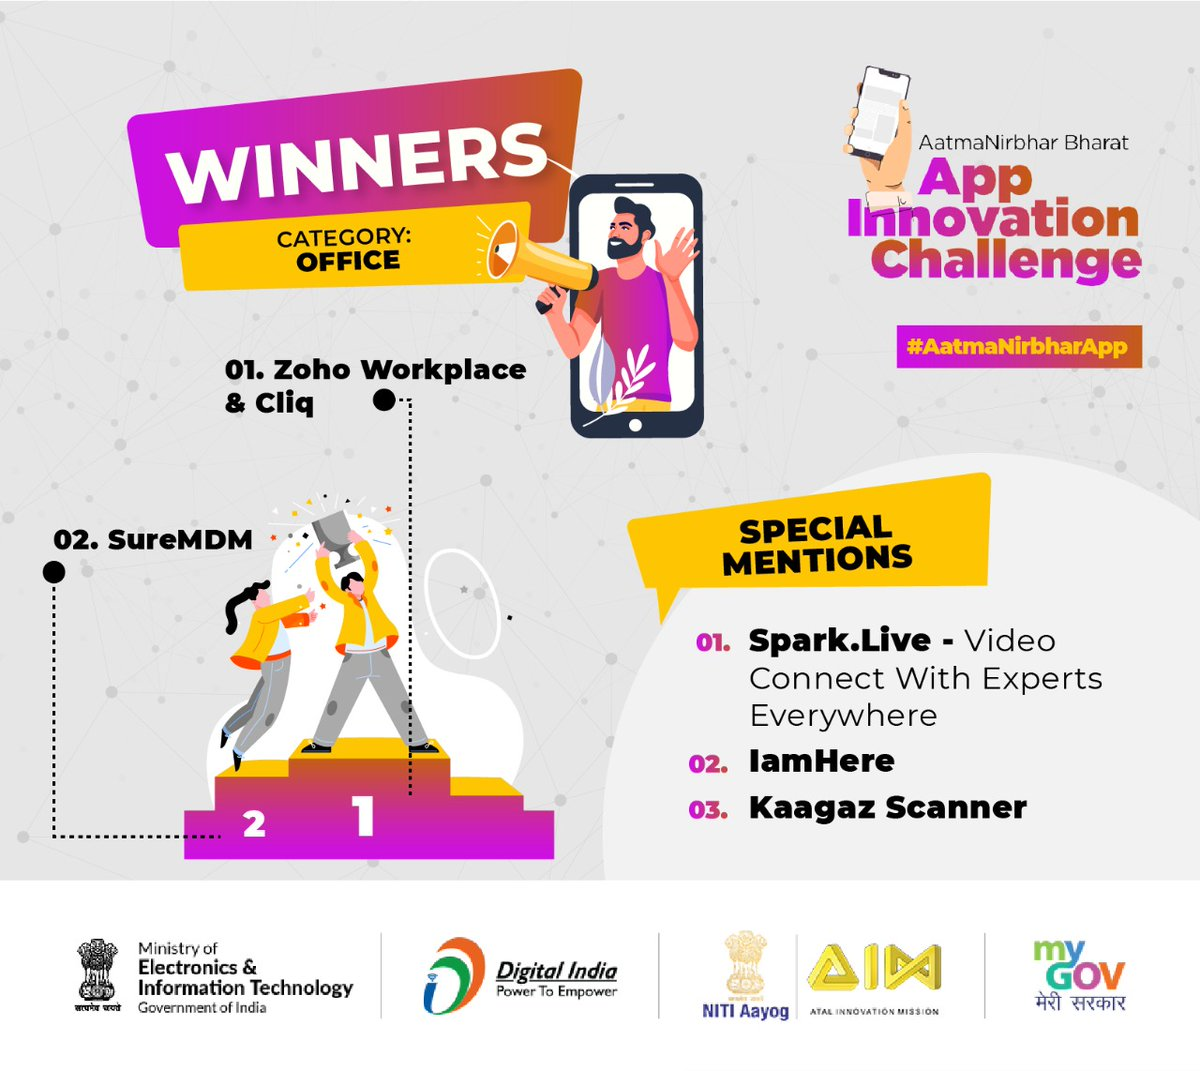 We are excited to announce the winners of the 'Office Category', in the #AatmaNirbharApp Challenge. Congratulations! All entries were of a very high standard, and we urge you to download and start using these 100% Indian Apps today!